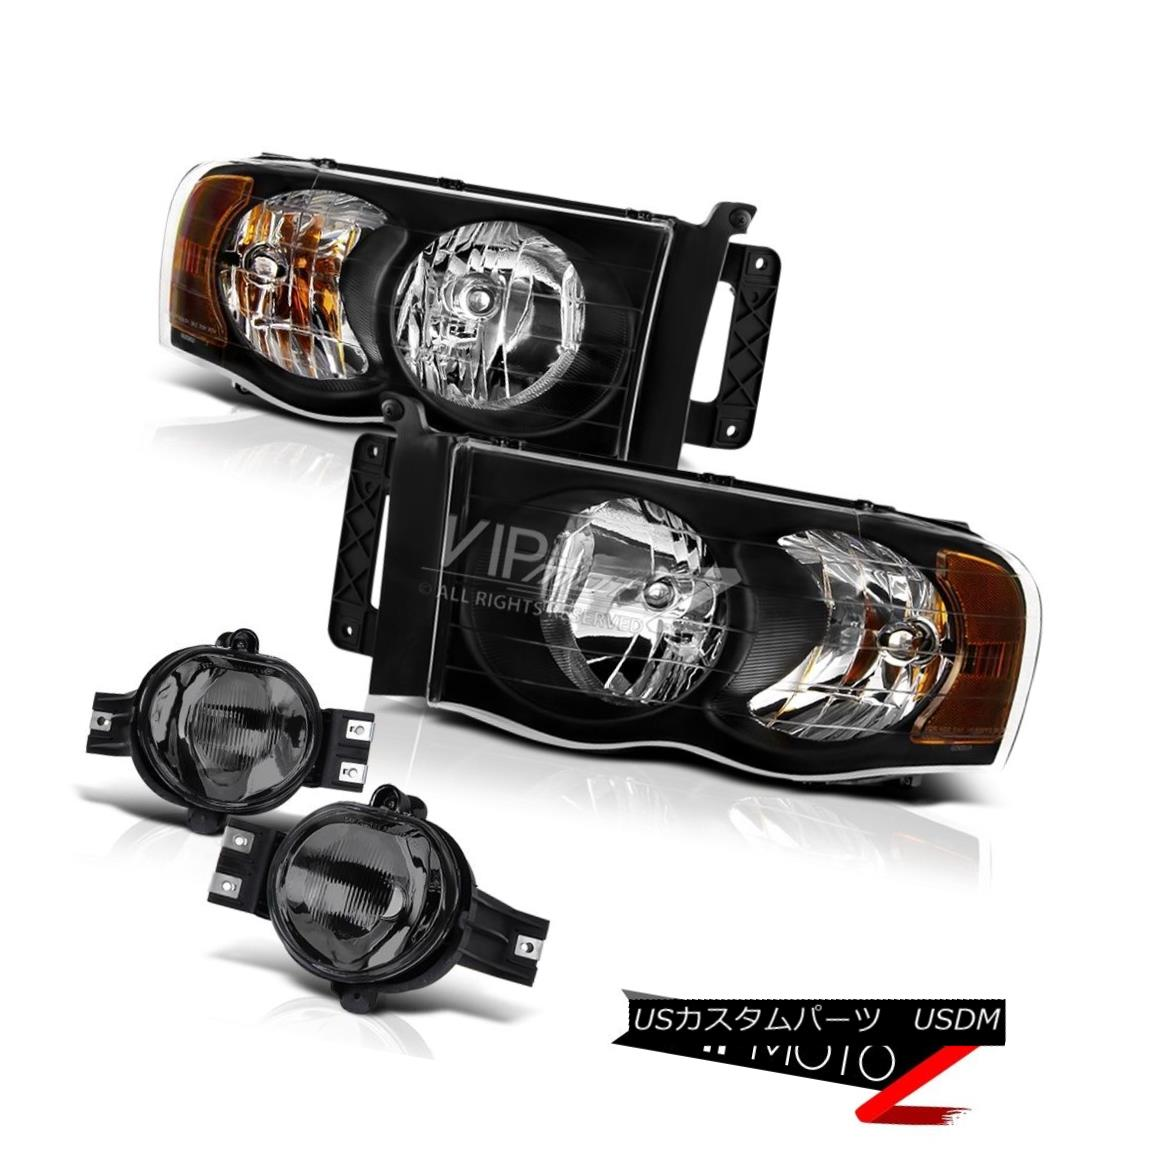 ヘッドライト 03-05 Dodge Ram 3500 Diesel Diamond Black Halo Headlights+Smoke Tinted Fog Lamps 03-05 Dodge Ram 3500ディーゼルダイヤモンドブラックHaloヘッドライト+ Smo